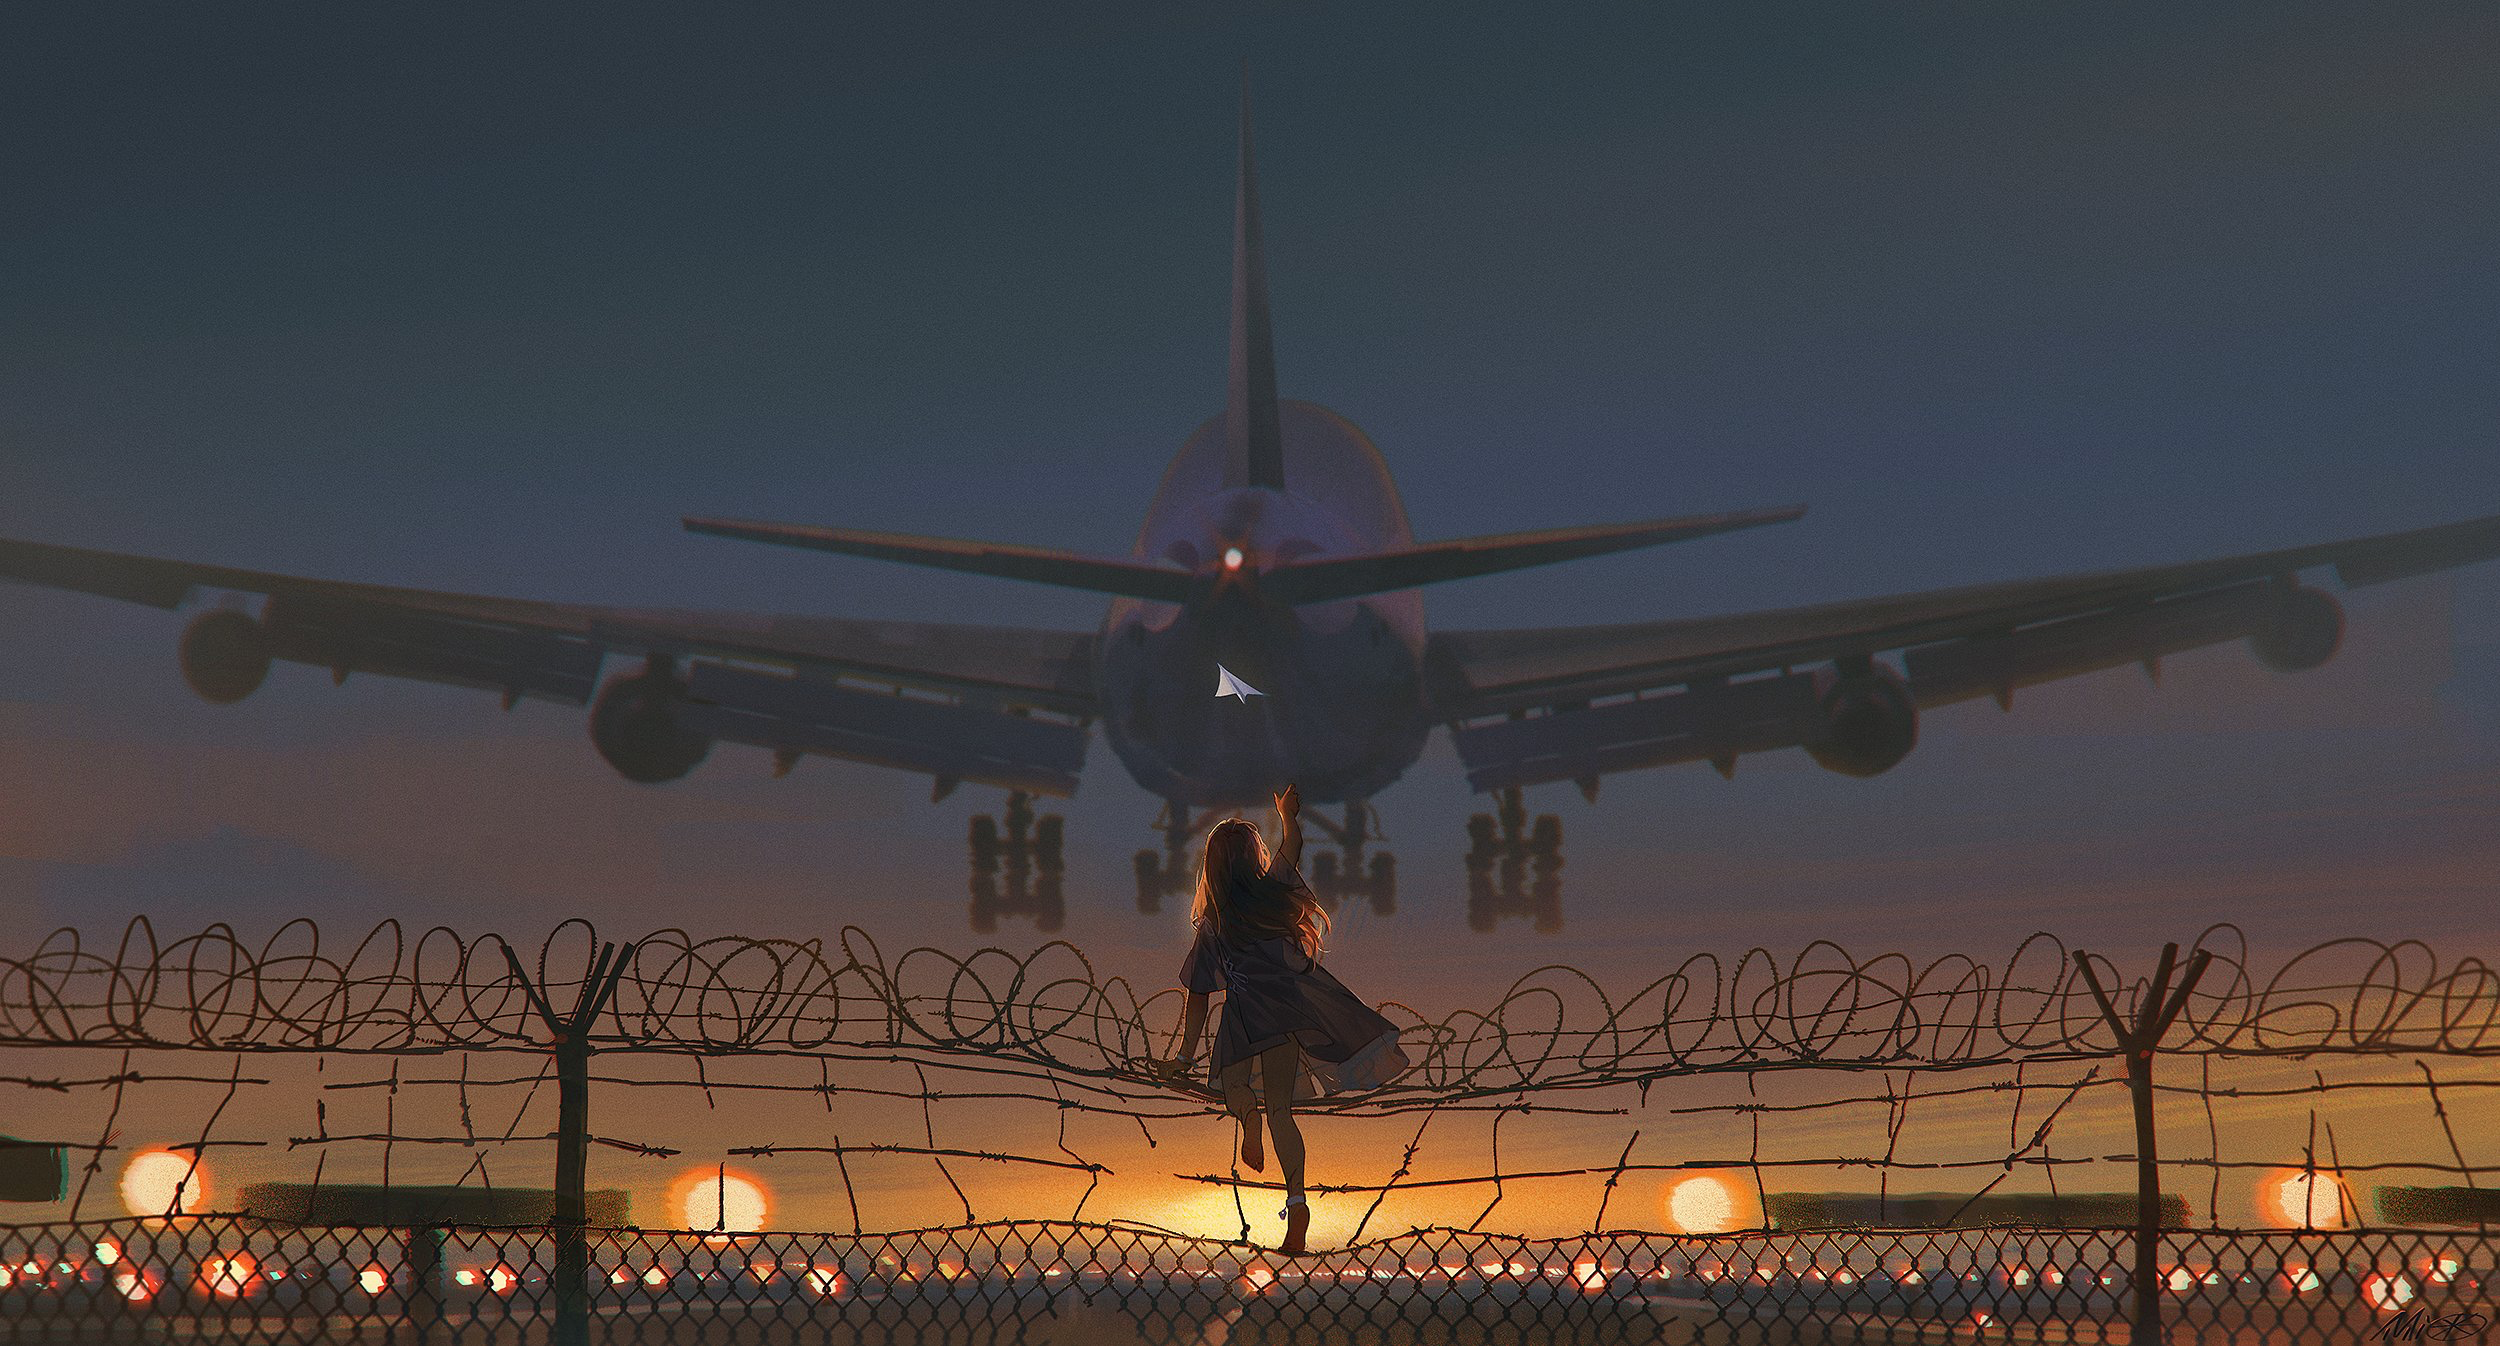 Anime 2500x1346 anime girls original characters aircraft Alzi米 ALZi Xiaomi passenger aircraft vehicle fence paper planes anime